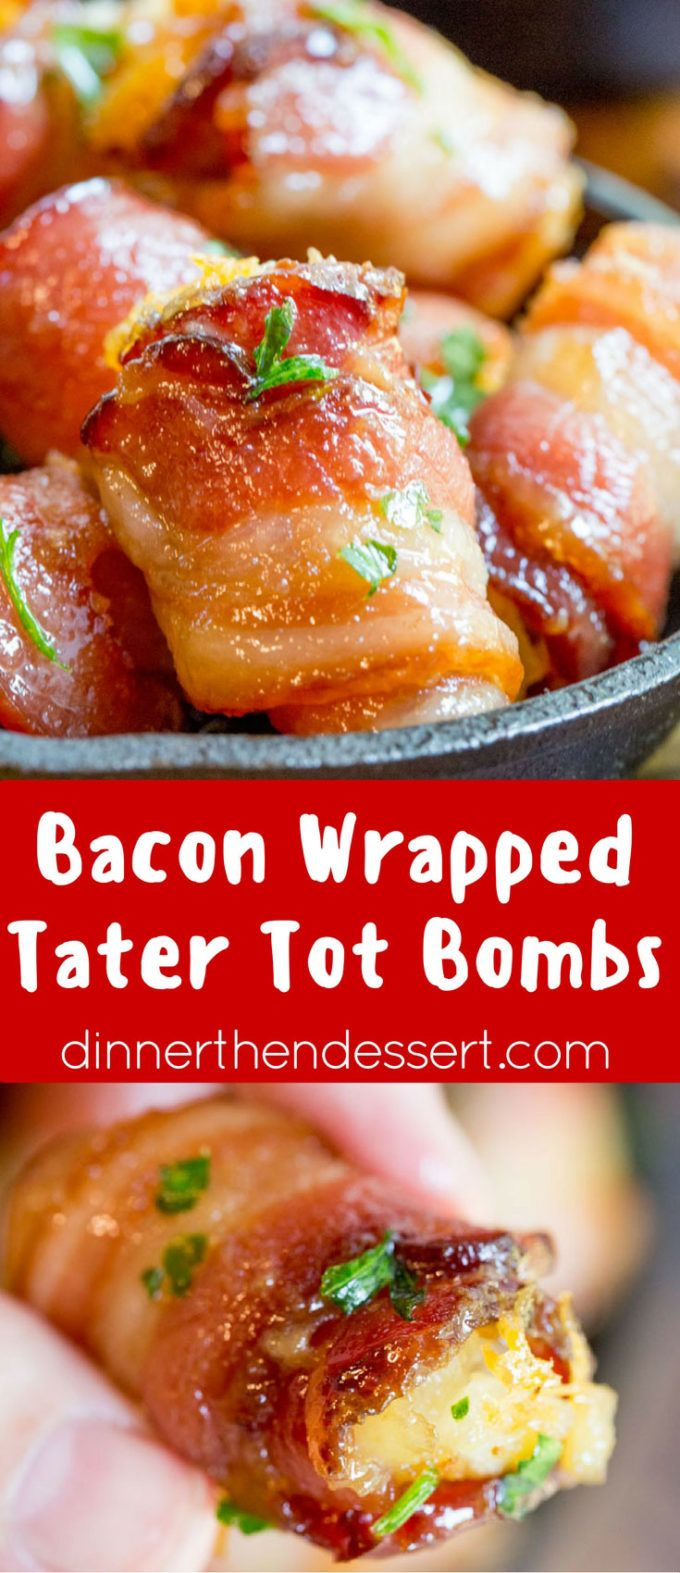 Bacon Wrapped Tater Tot Bombs are an easy appetizer of tater tots and sharp cheddar cheese wrapped in thick cut bacon, rolled in brown sugar and baked. dinnerthendessert.com